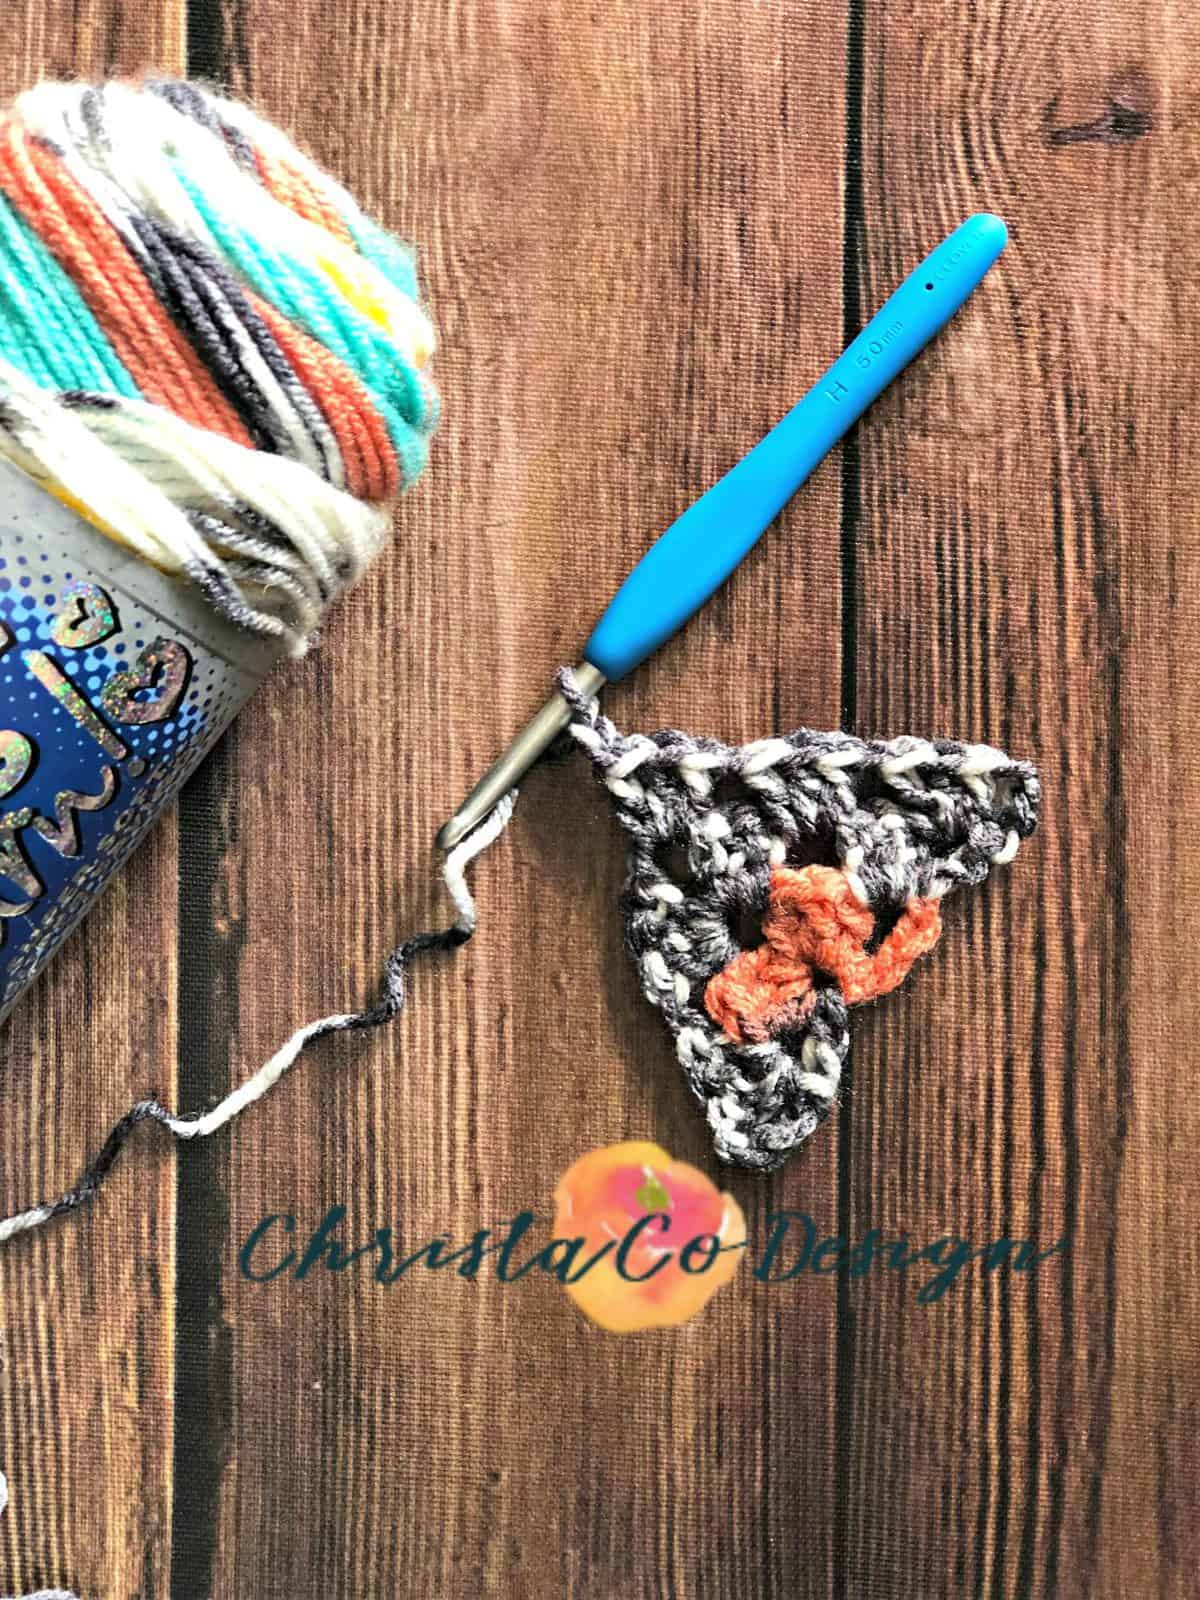 Continue to add 3 double crochets in chain 1 spaces.